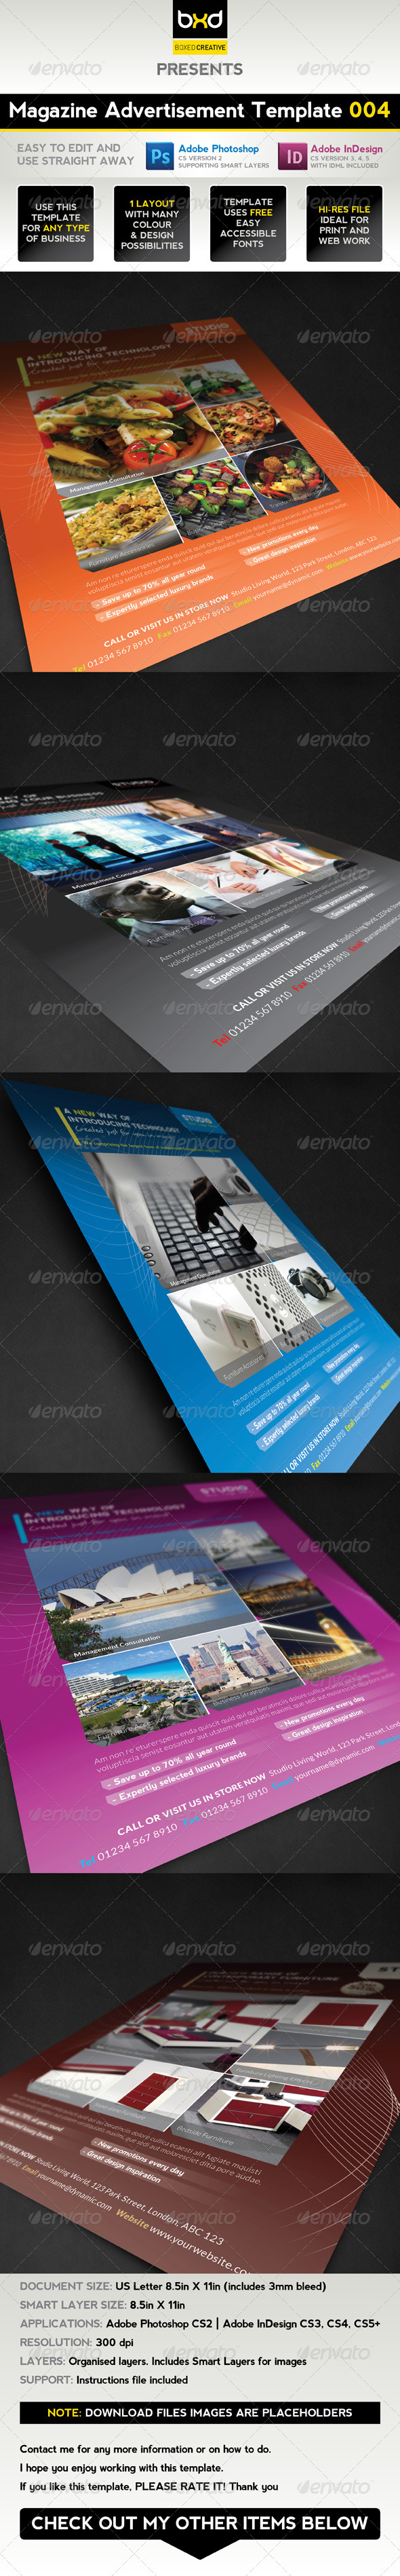 GraphicRiver Magazine Advert Template 004 1608682